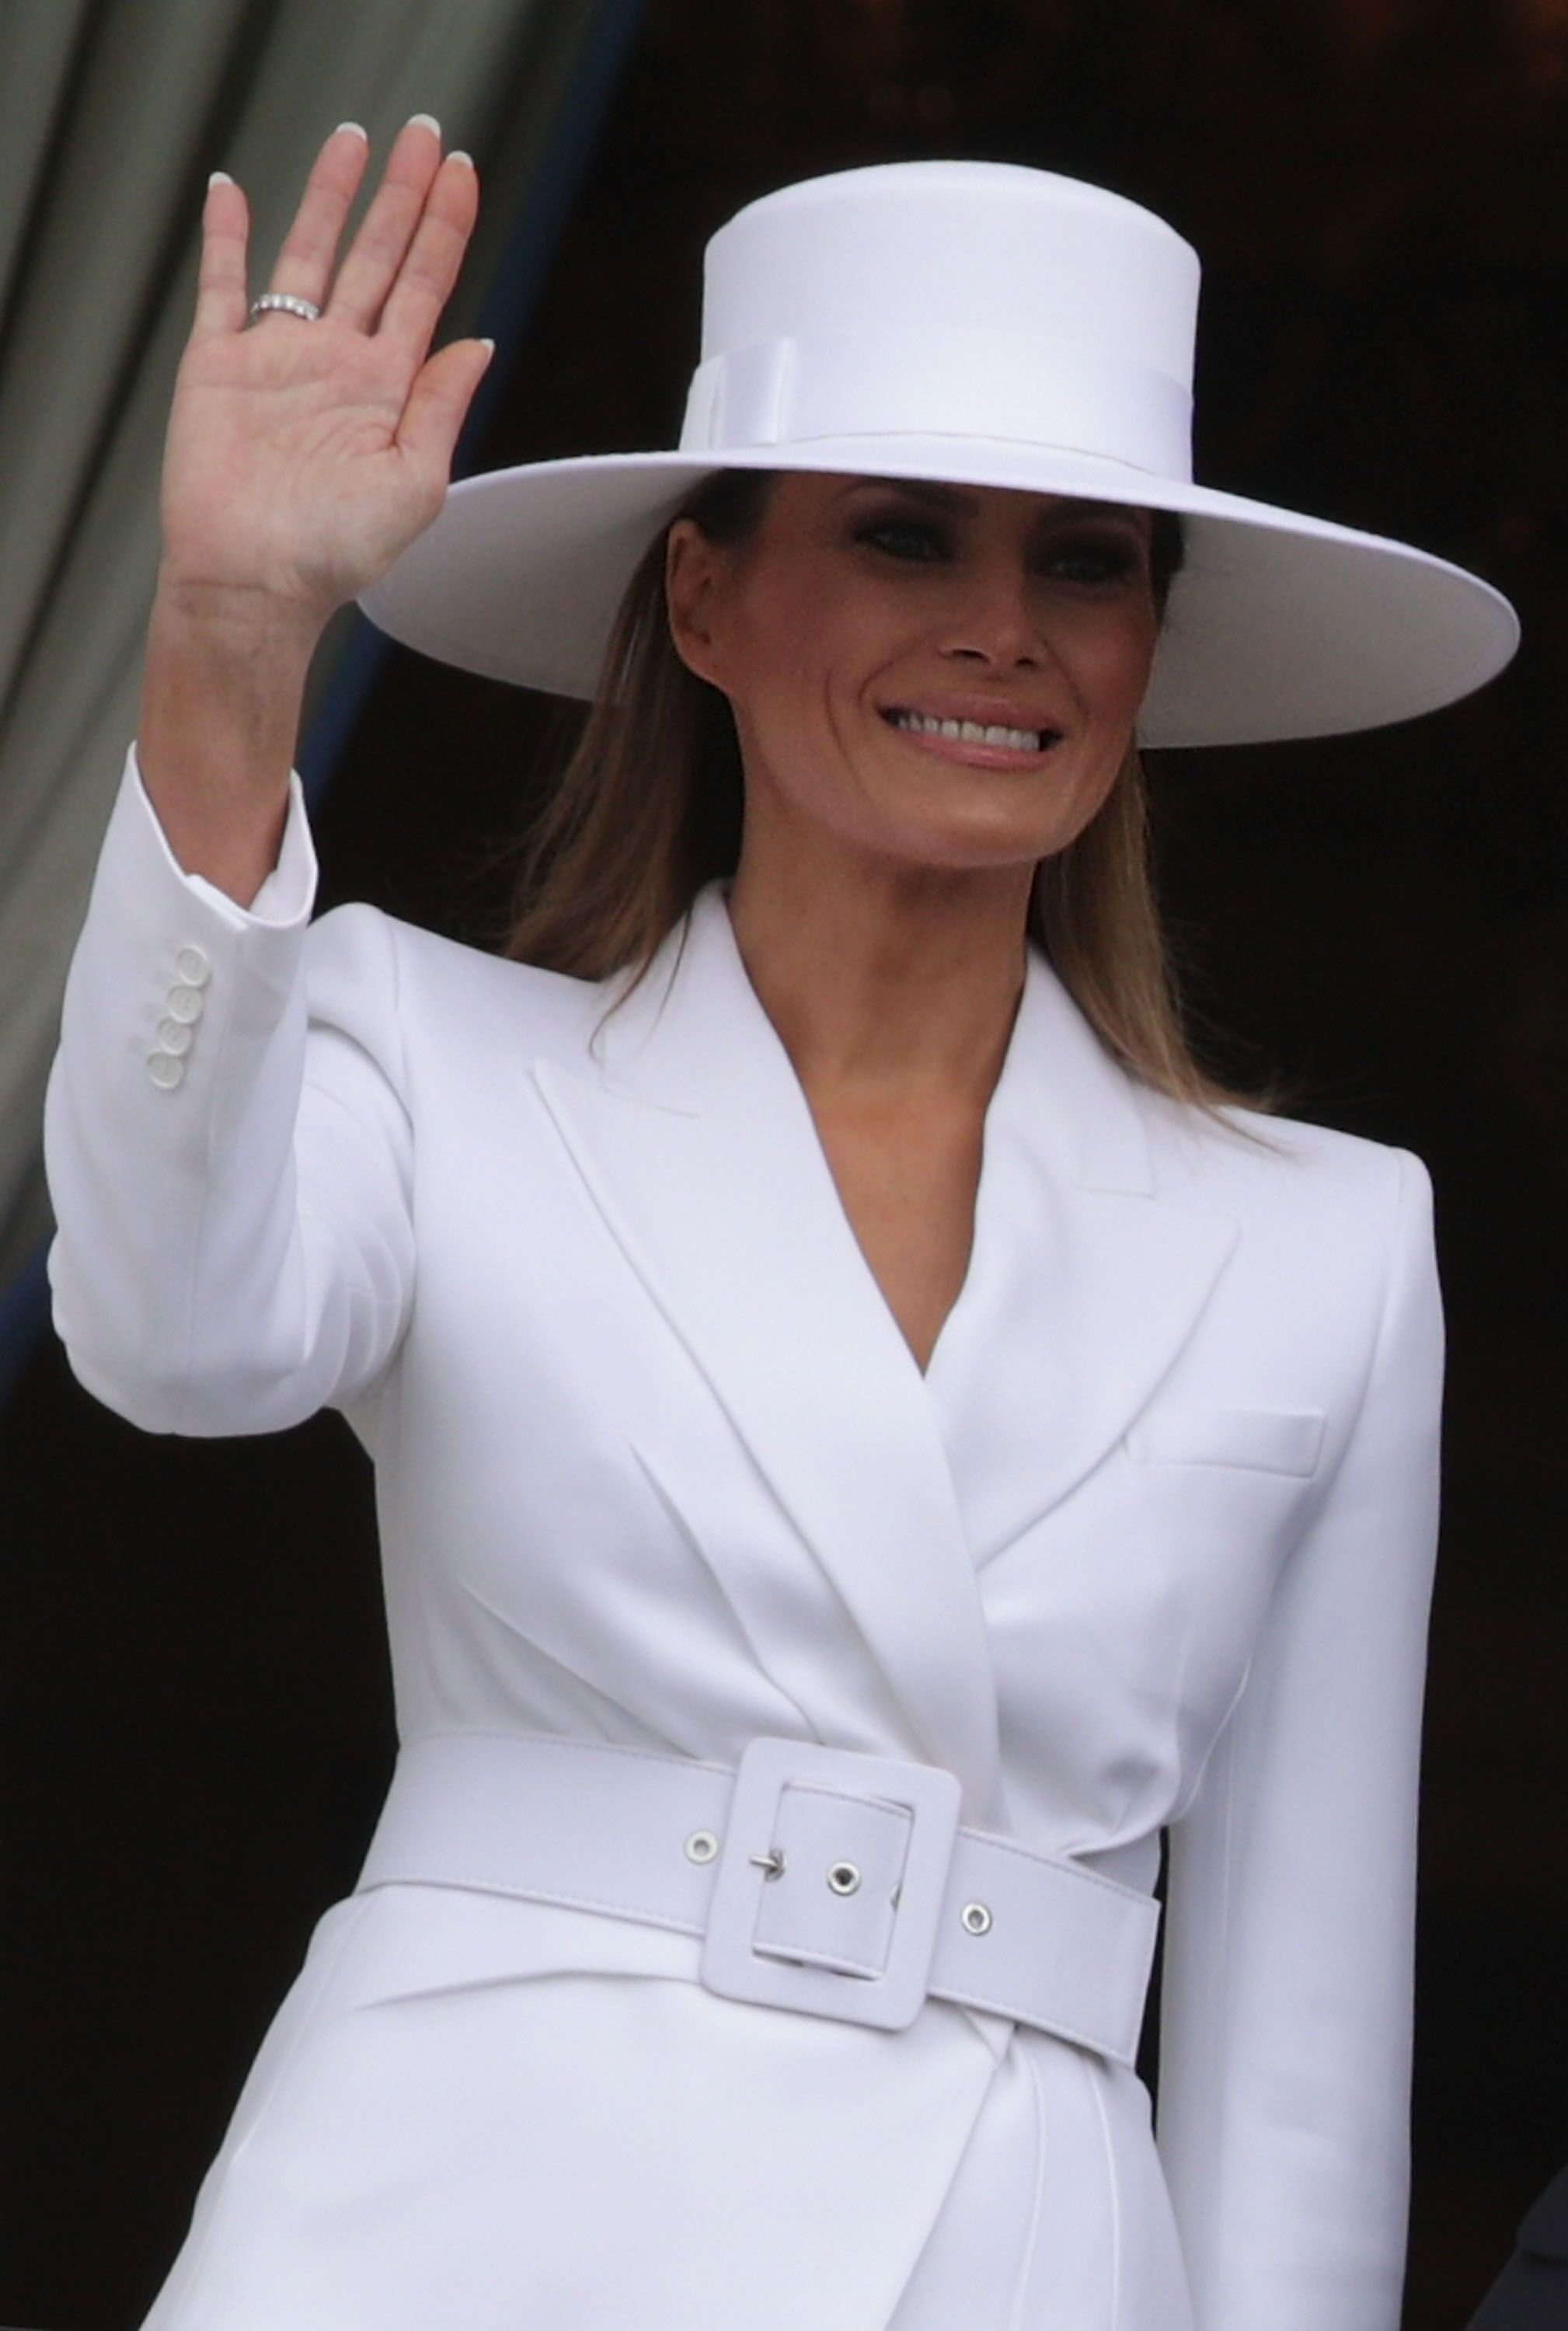 U.S. first lady Melania Trump waves during a state arrival ceremony at the South Lawn of the White House April 24, 2018 in Washington, DC | Photo: Getty Images